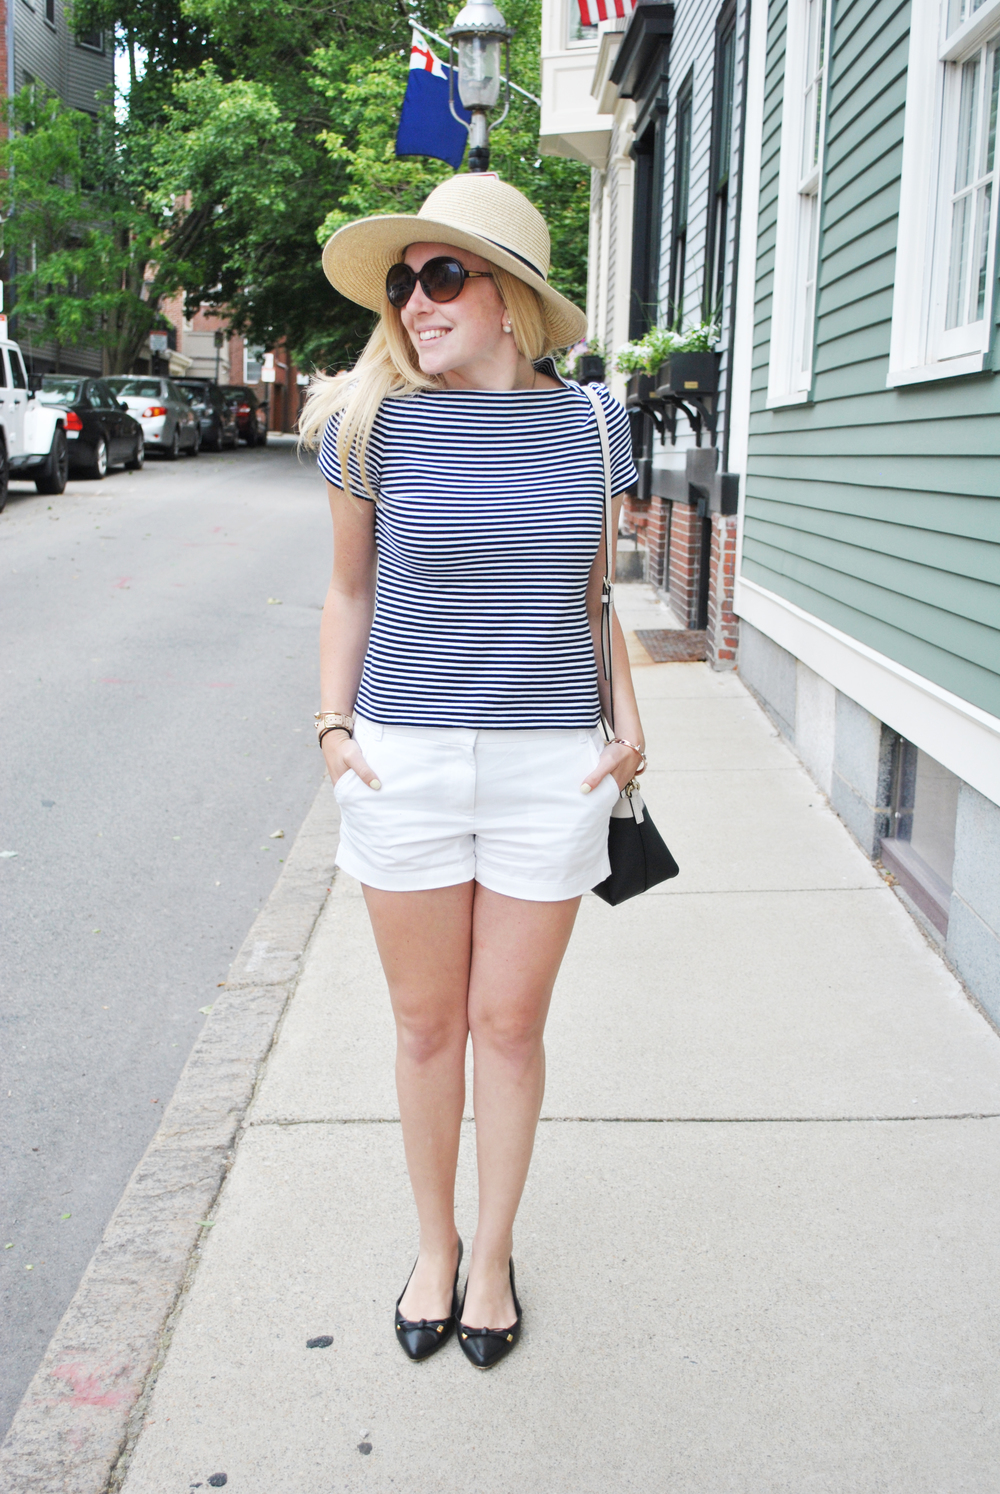 thoughtfulwish | kate spade // summer outfit // stripe tee // hat // black and white // shorts // boston fashion blogger